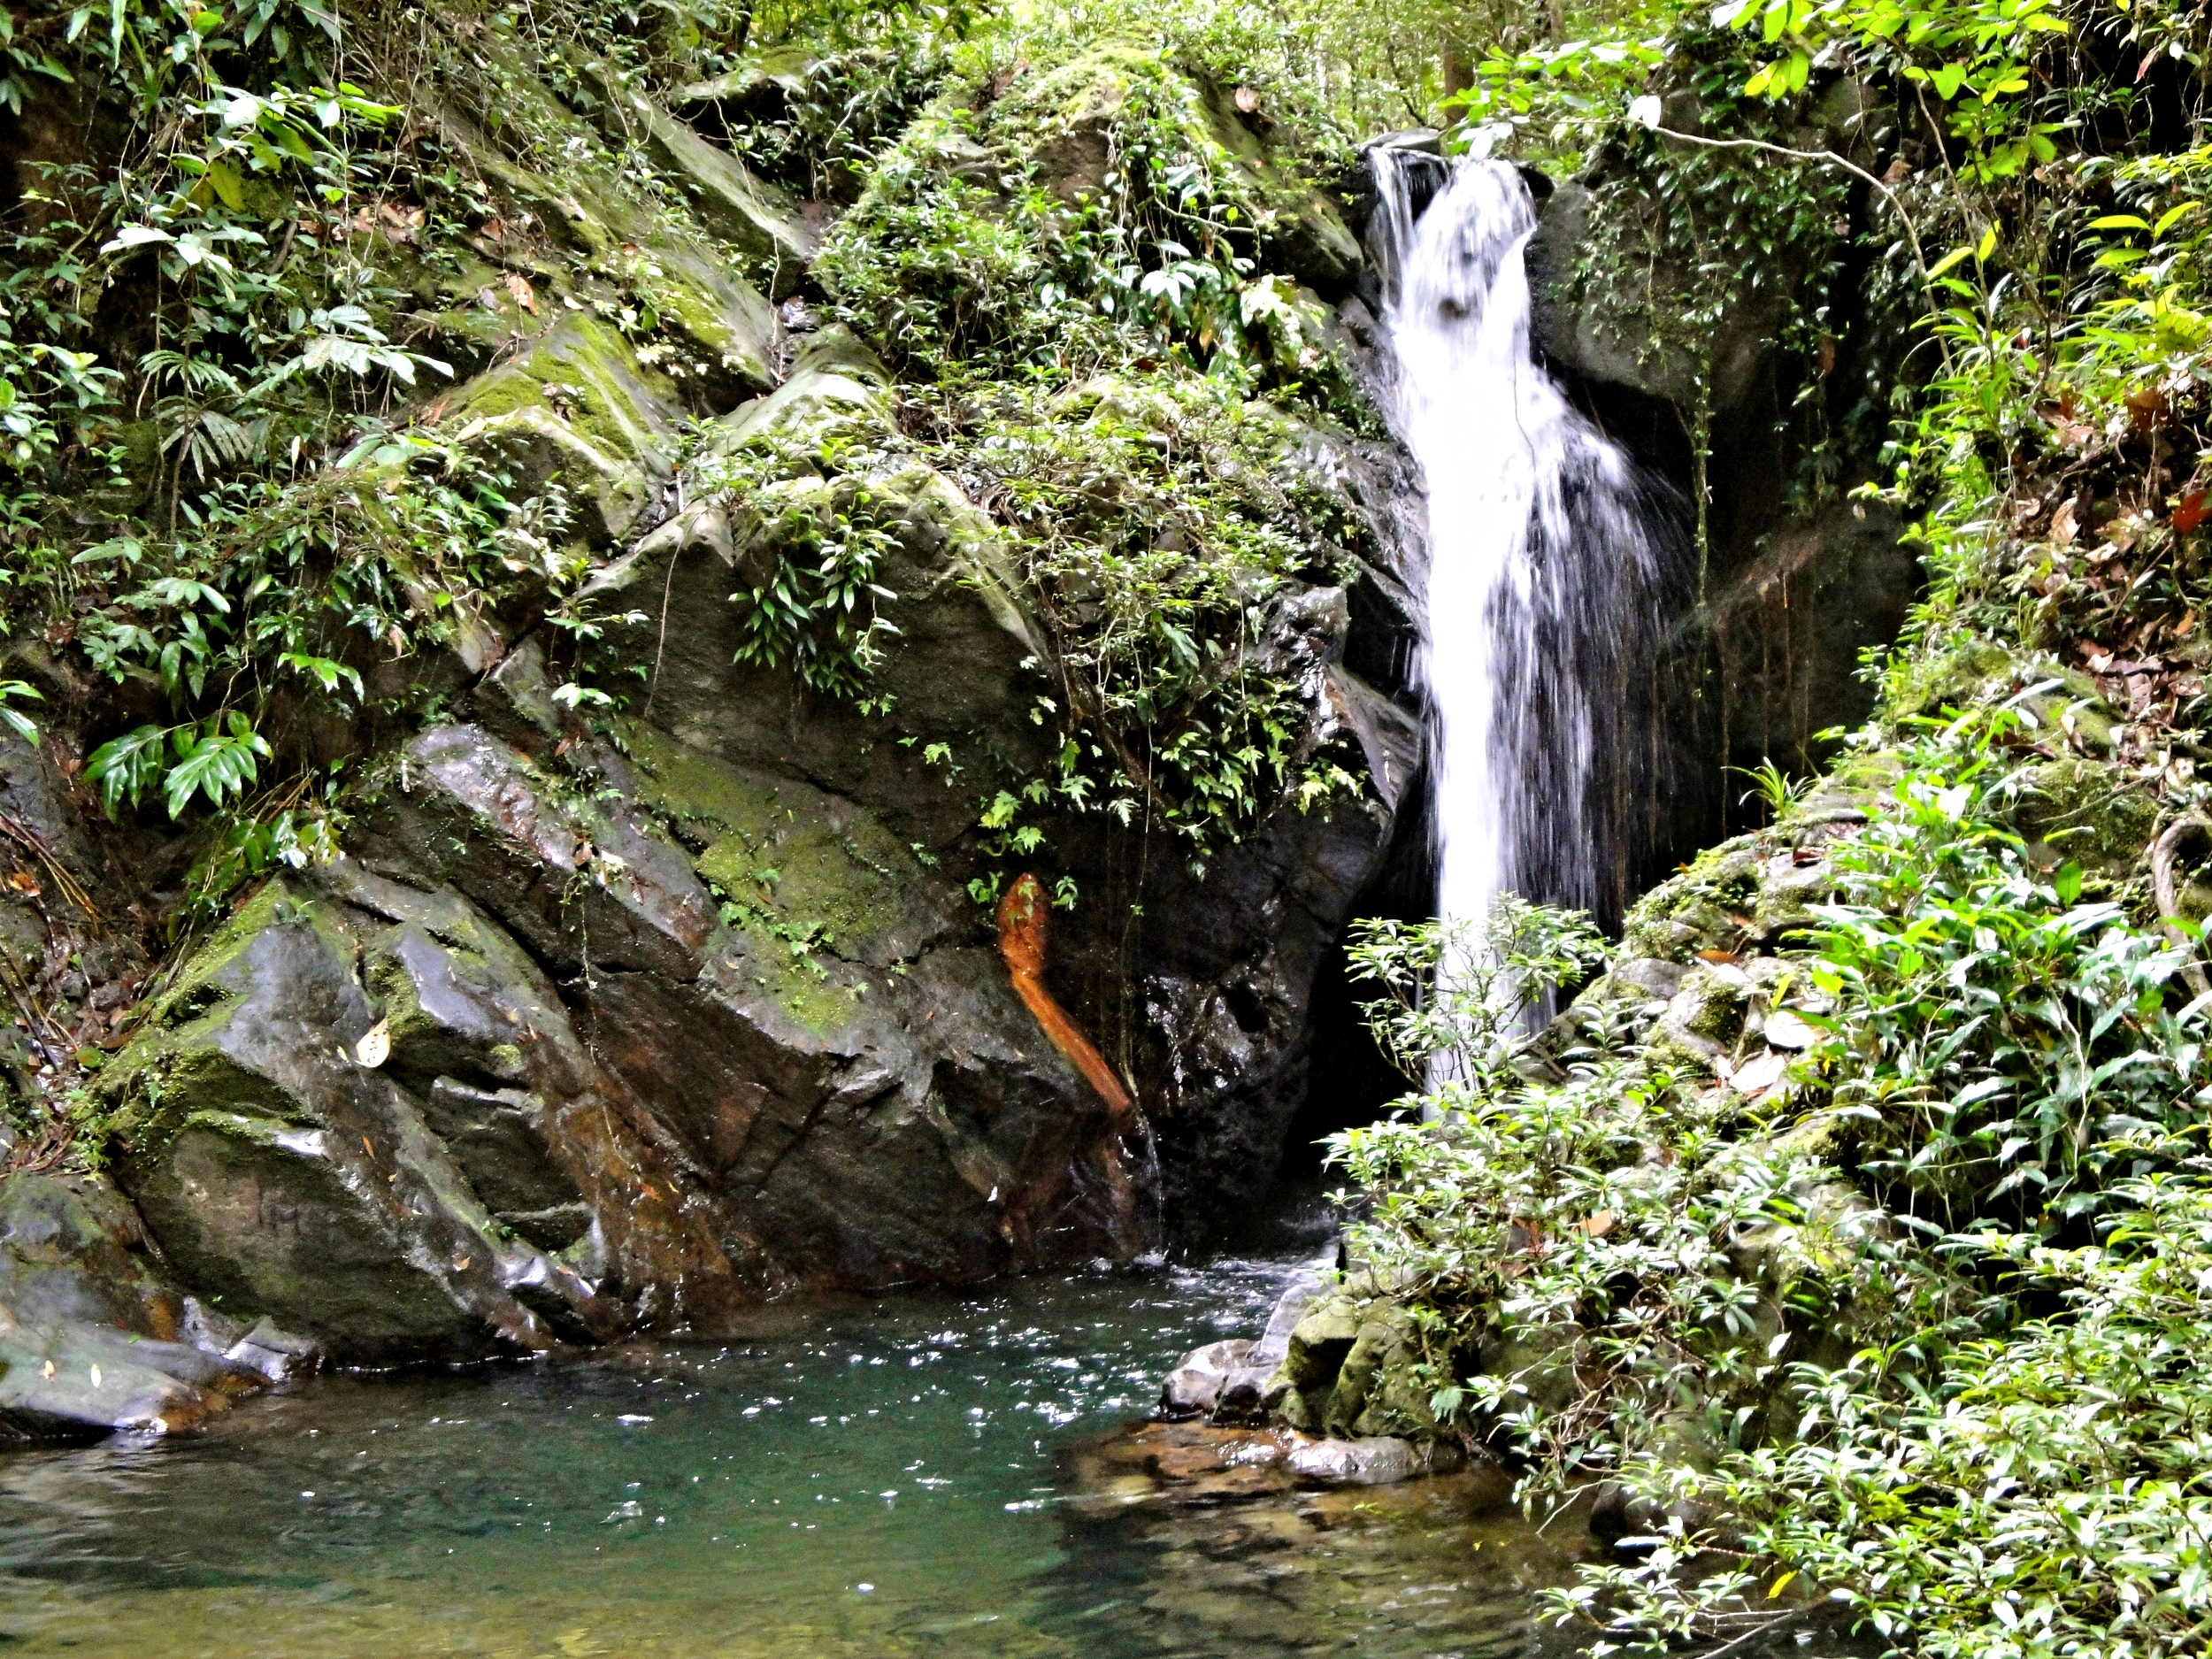 Several waterfalls lie hidden in the forests of the Cockscomb Basin